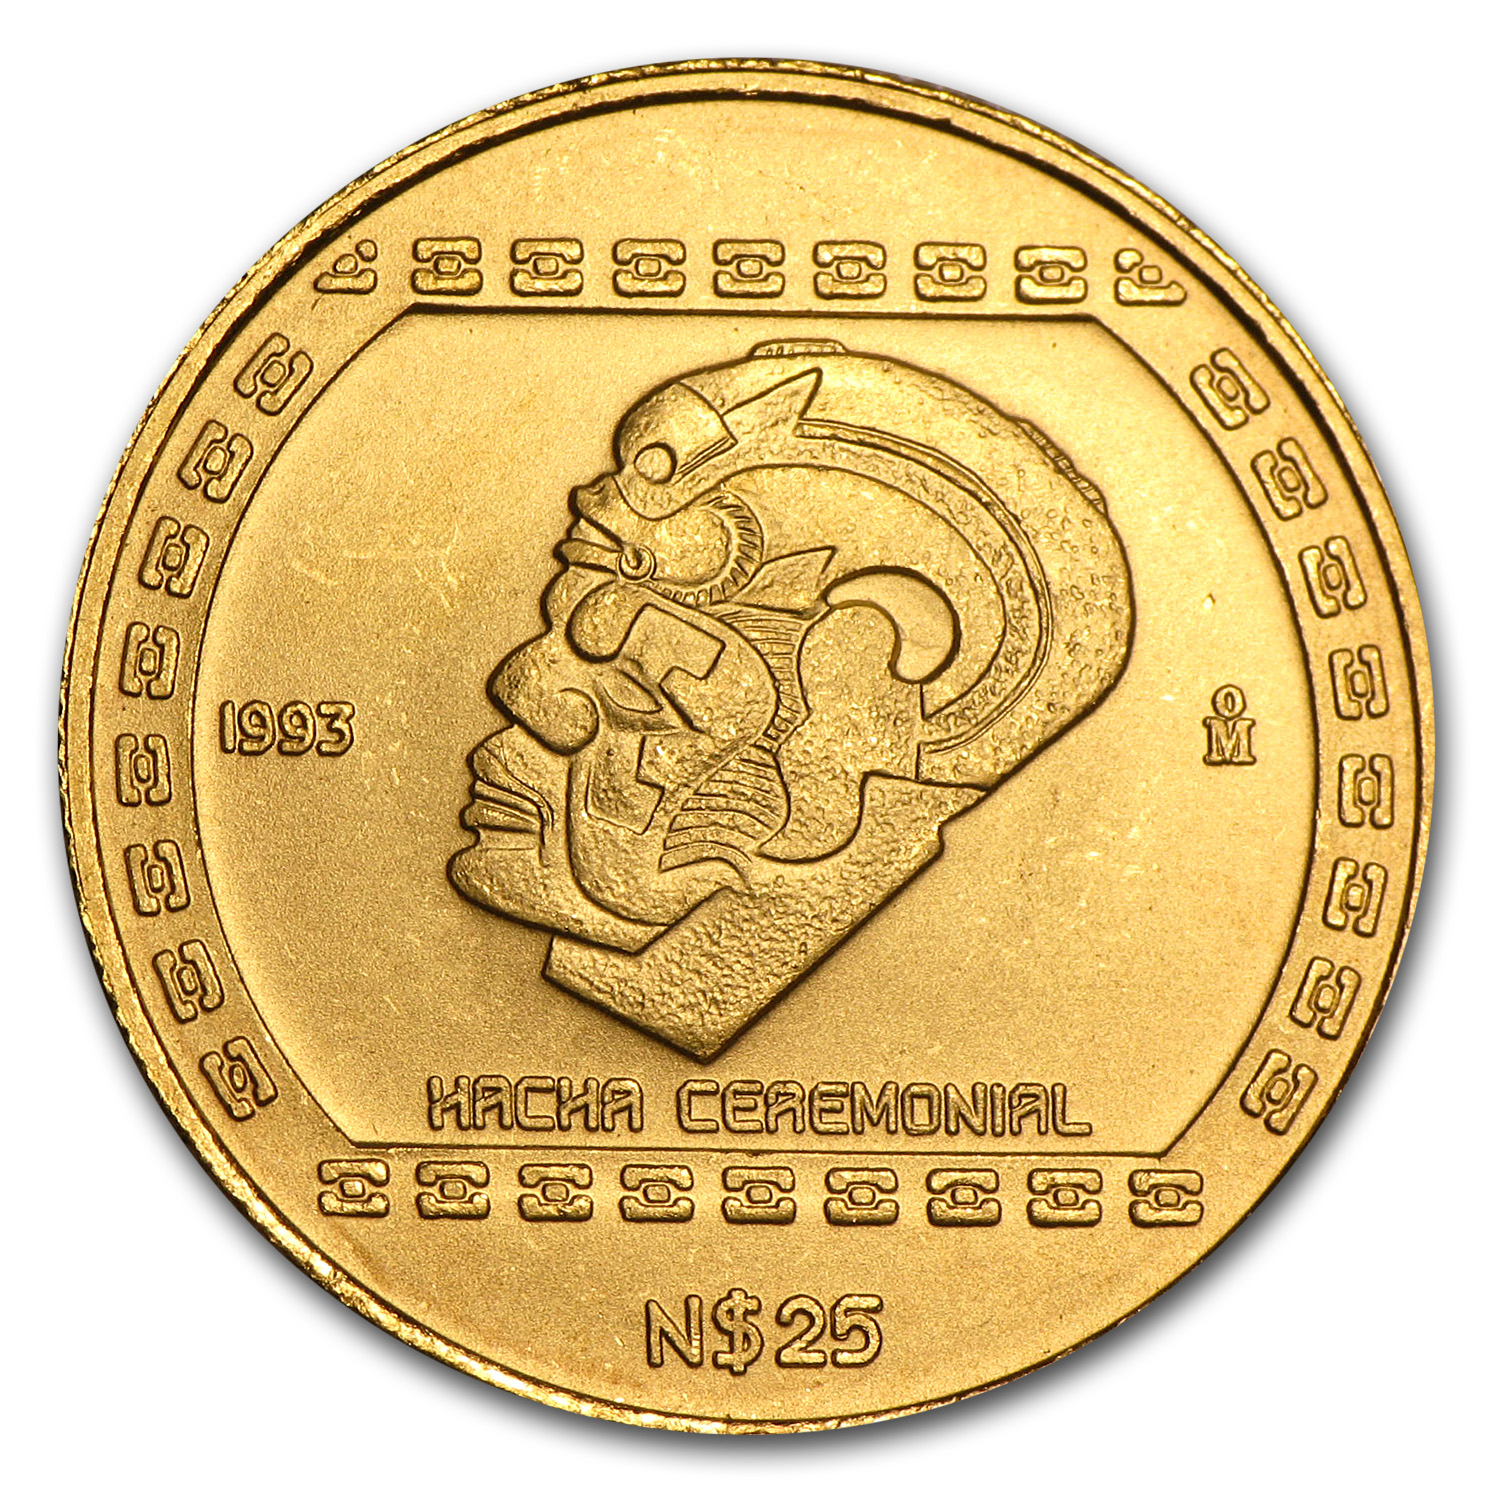 1993 Mexico Gold 25 Pesos Hacha Ceremonial BU